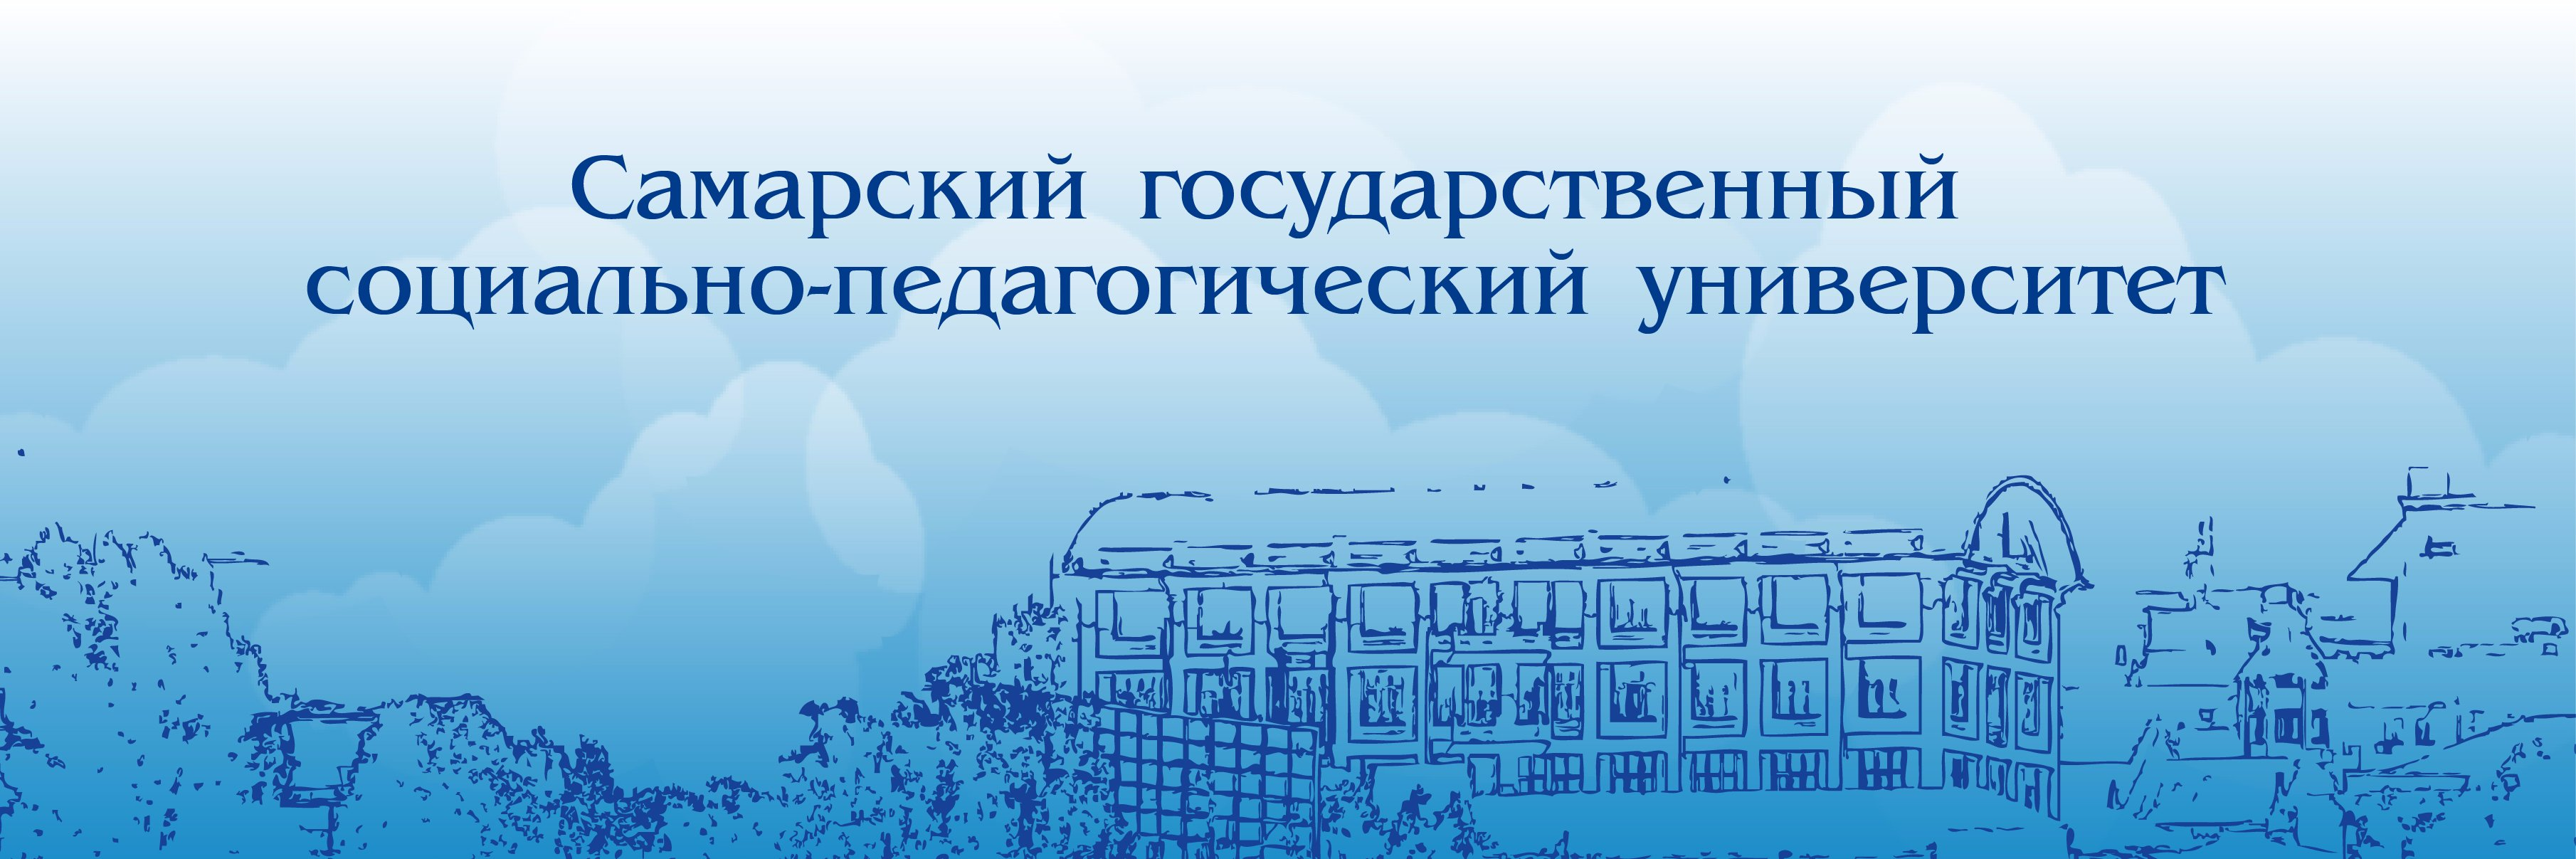 Samara State Academy of Social Sciences and Humanities's official Twitter account